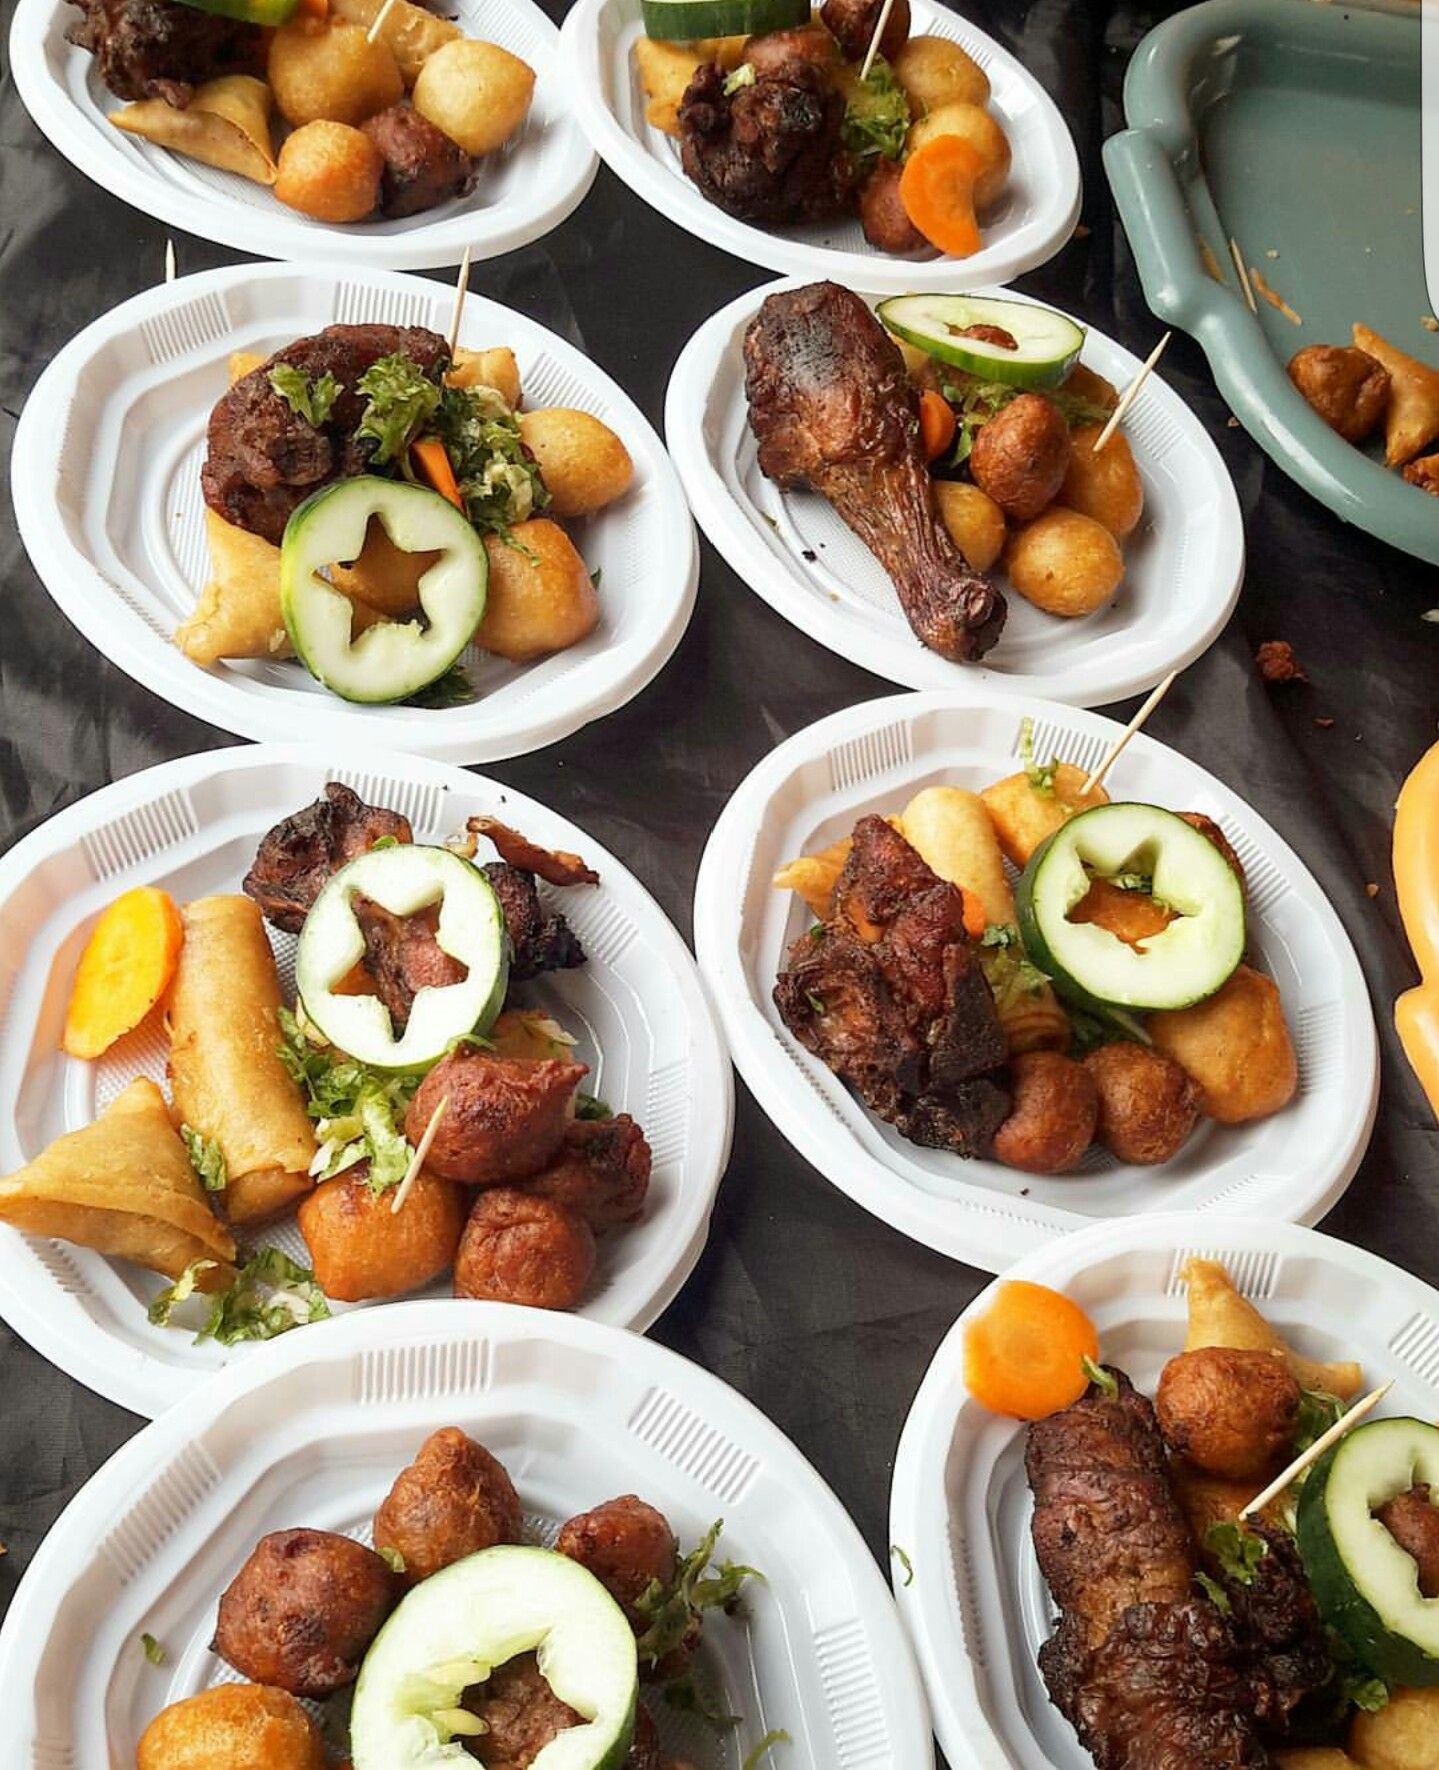 Nigerian Wedding Food: Almighty SMALL CHOPS! Serve This Plate Of Yummy Goodness